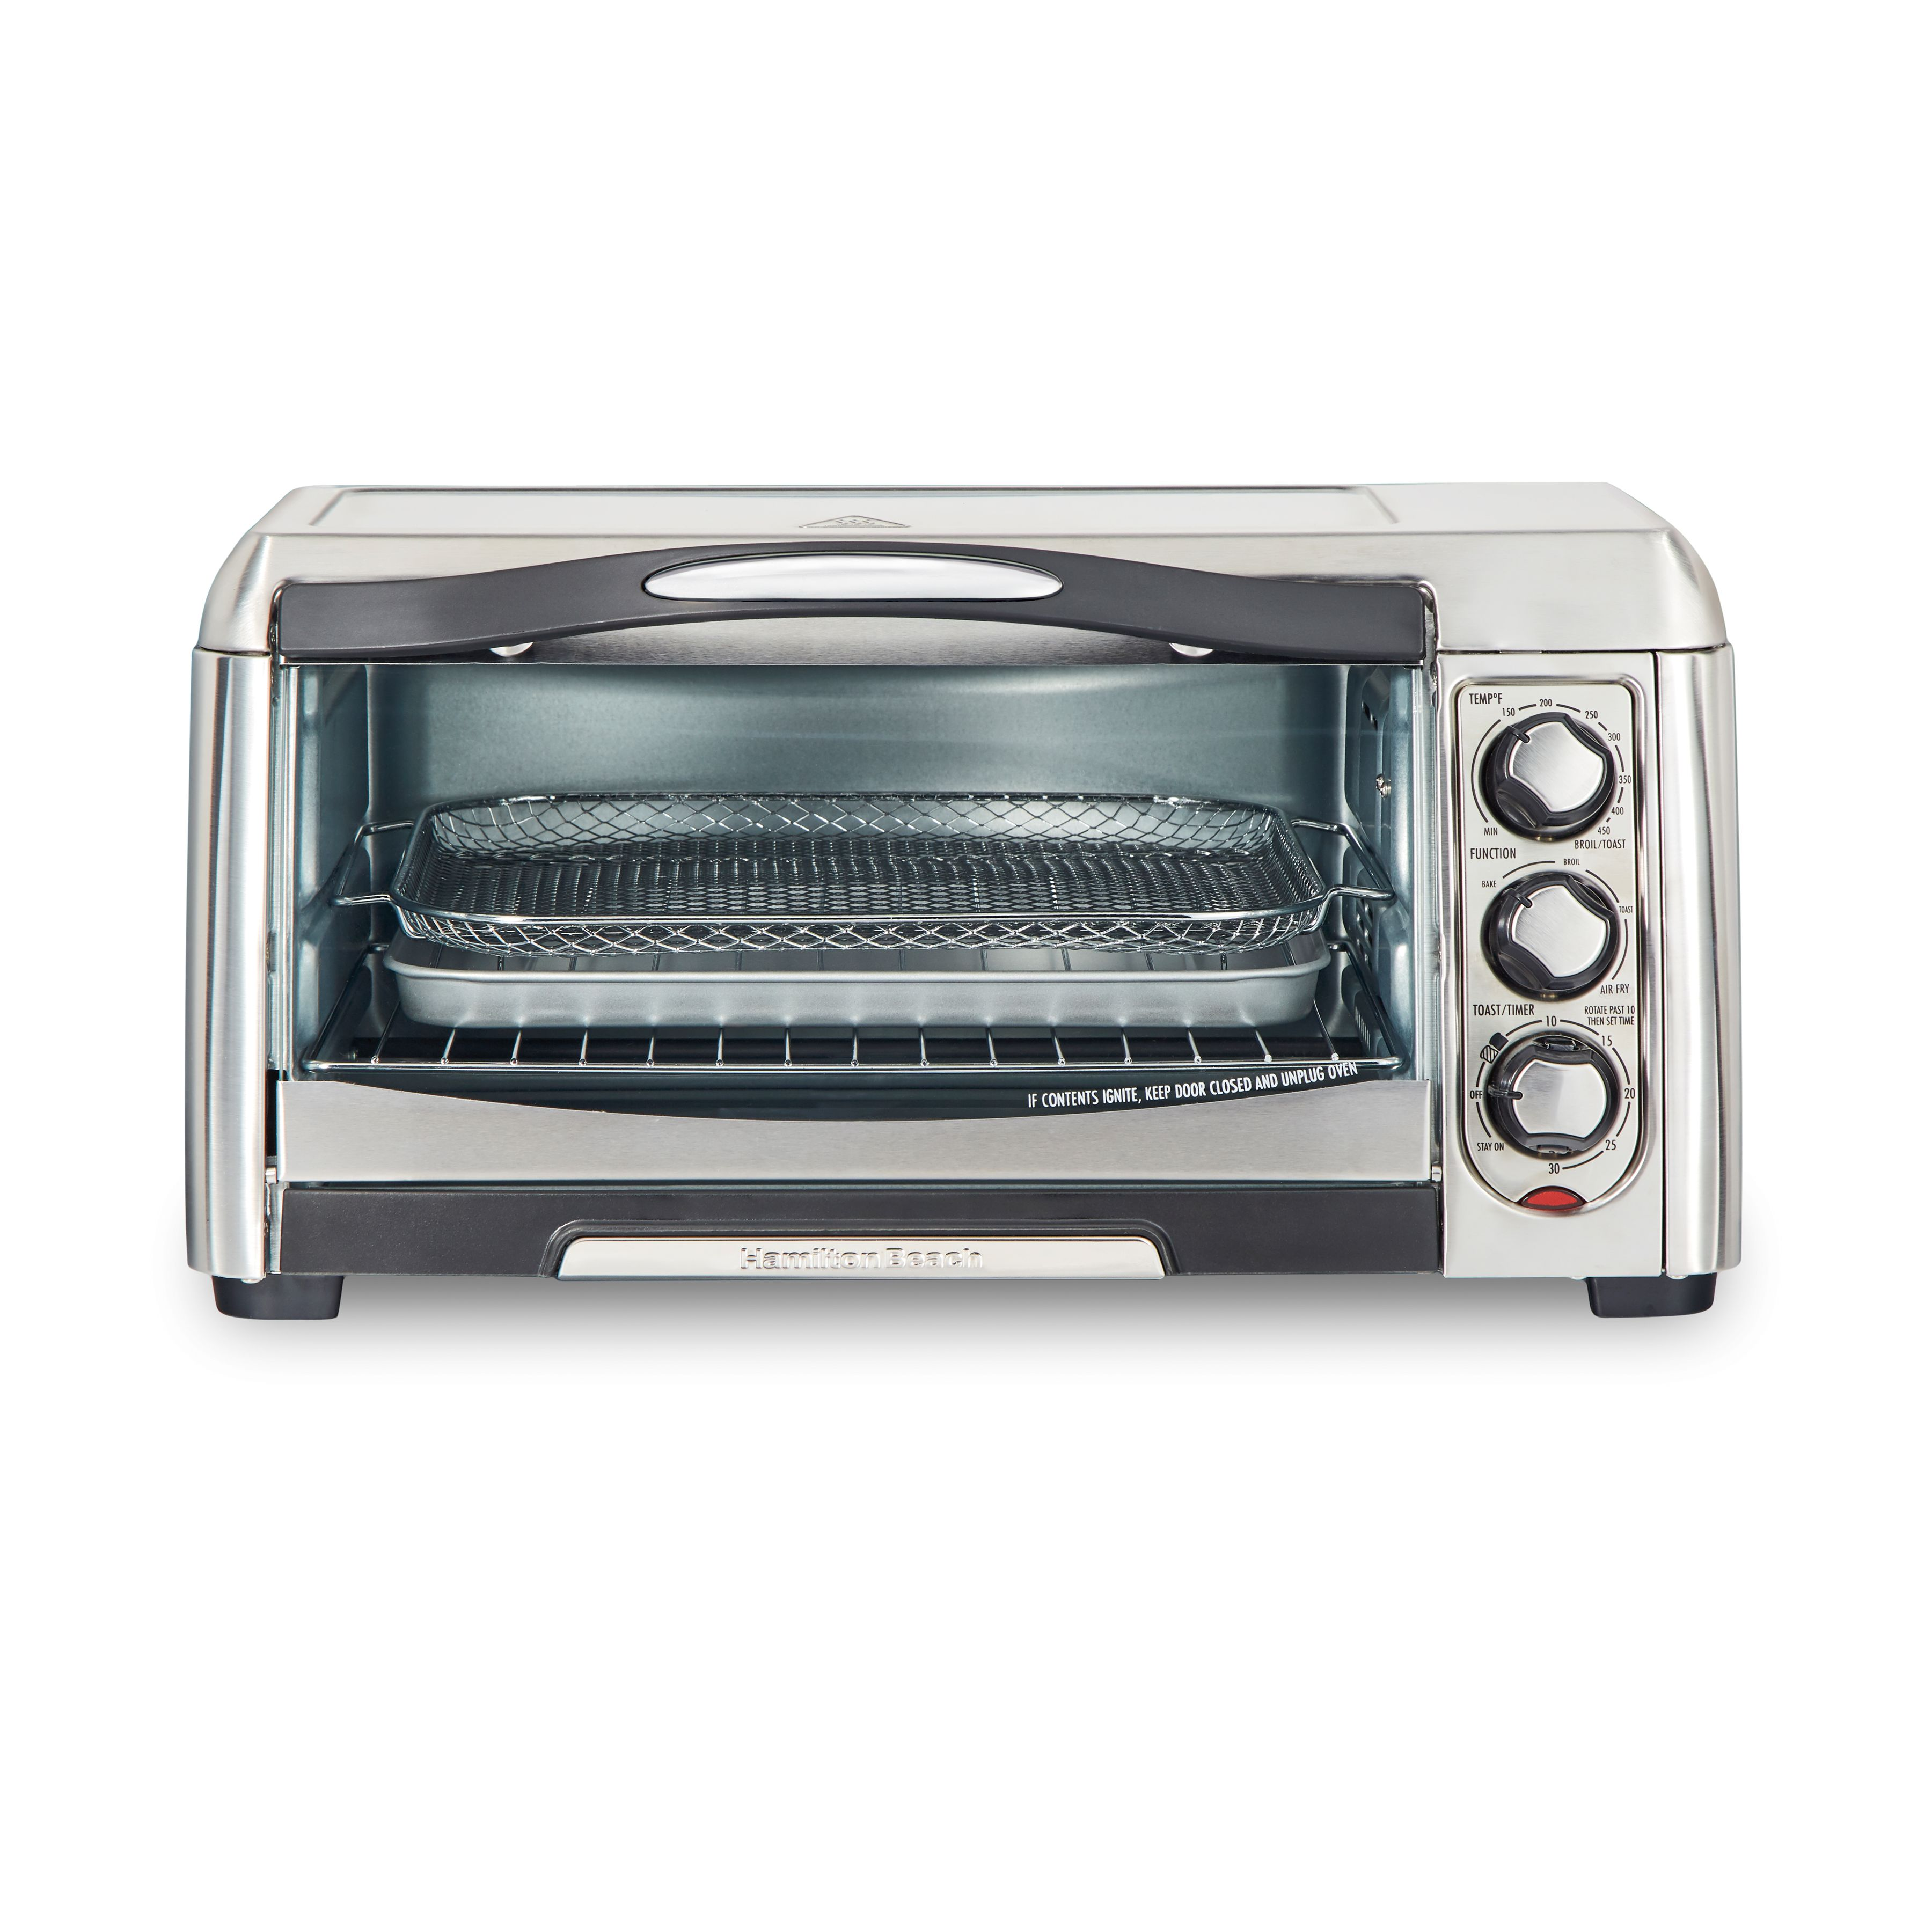 Home In 2020 Toaster Oven Convection Toaster Oven Toaster